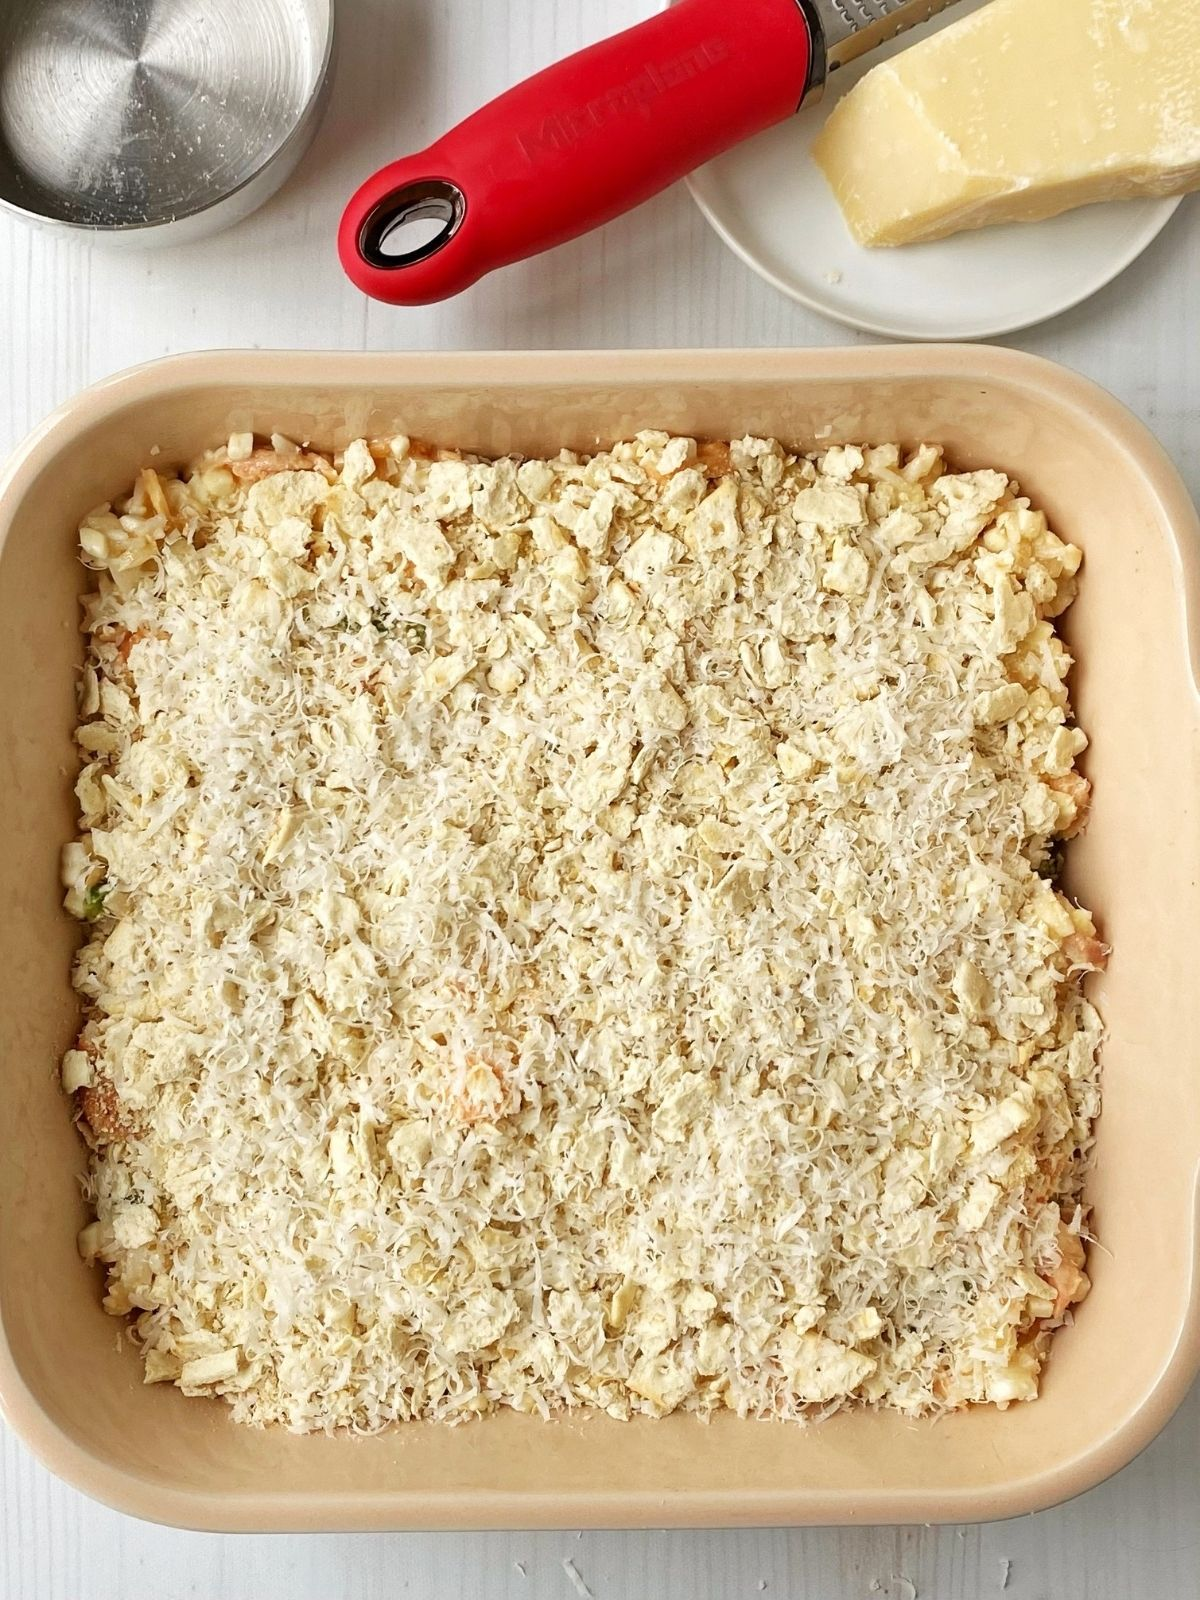 salmon mixture topped with cracker topping ready for baking